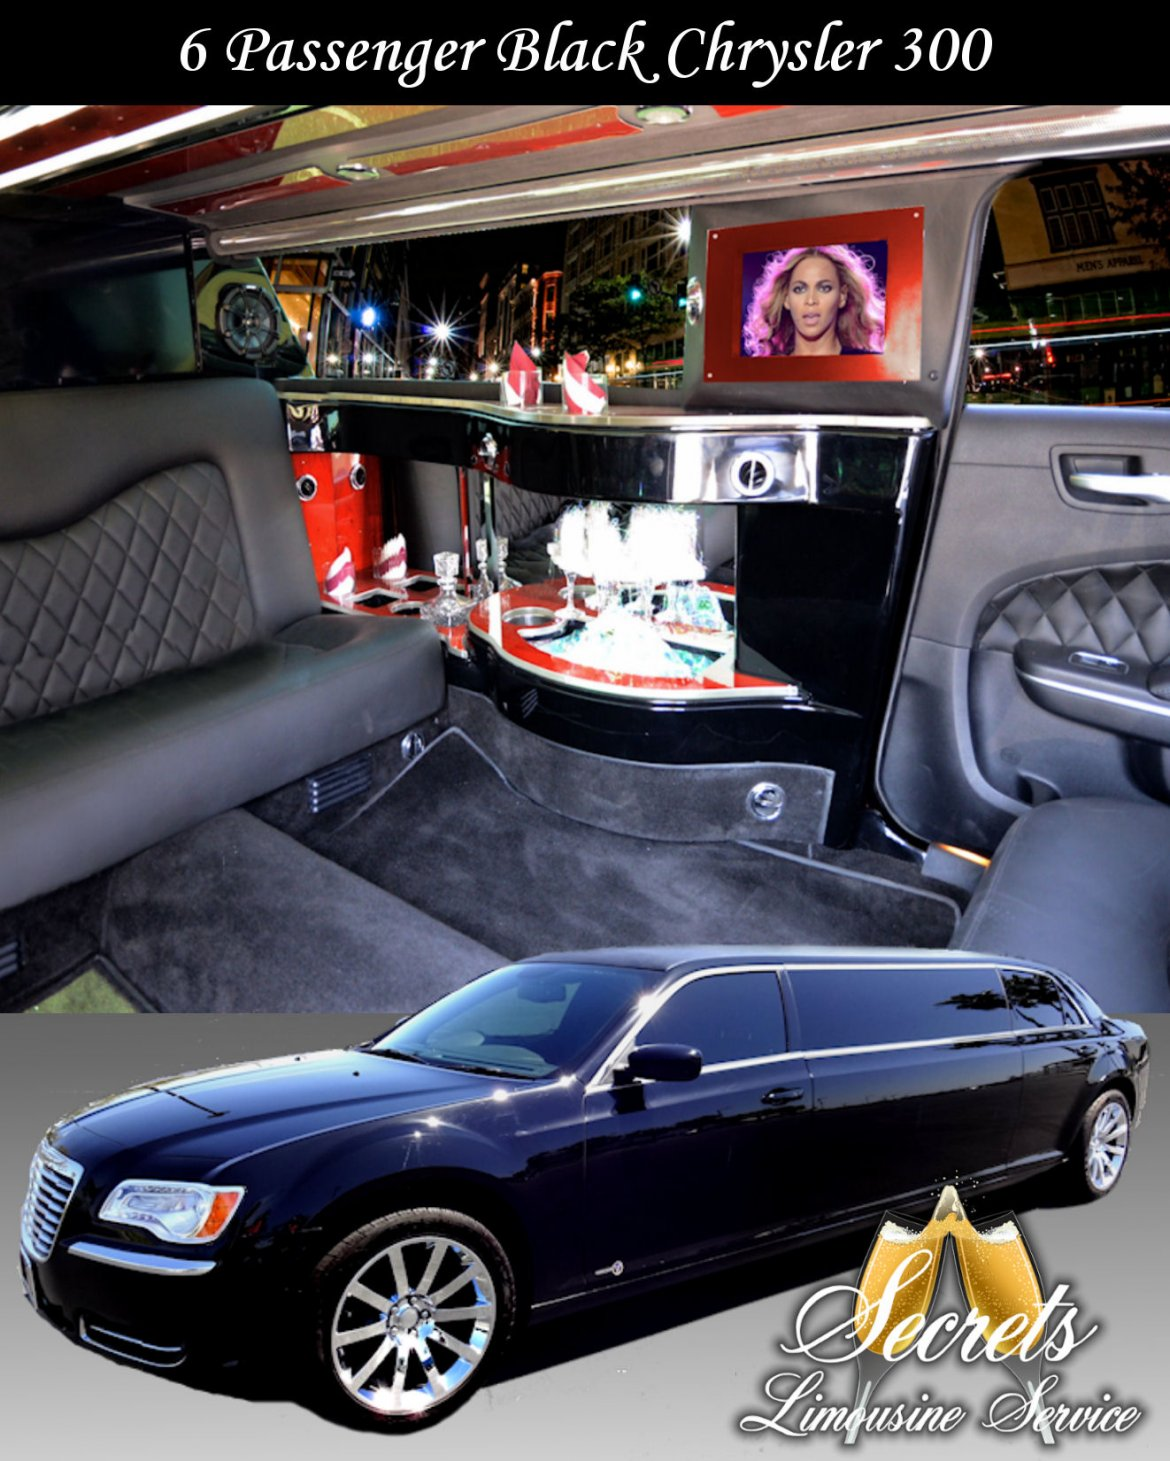 Used 2014 Chrysler 300 For Sale #WS-10878